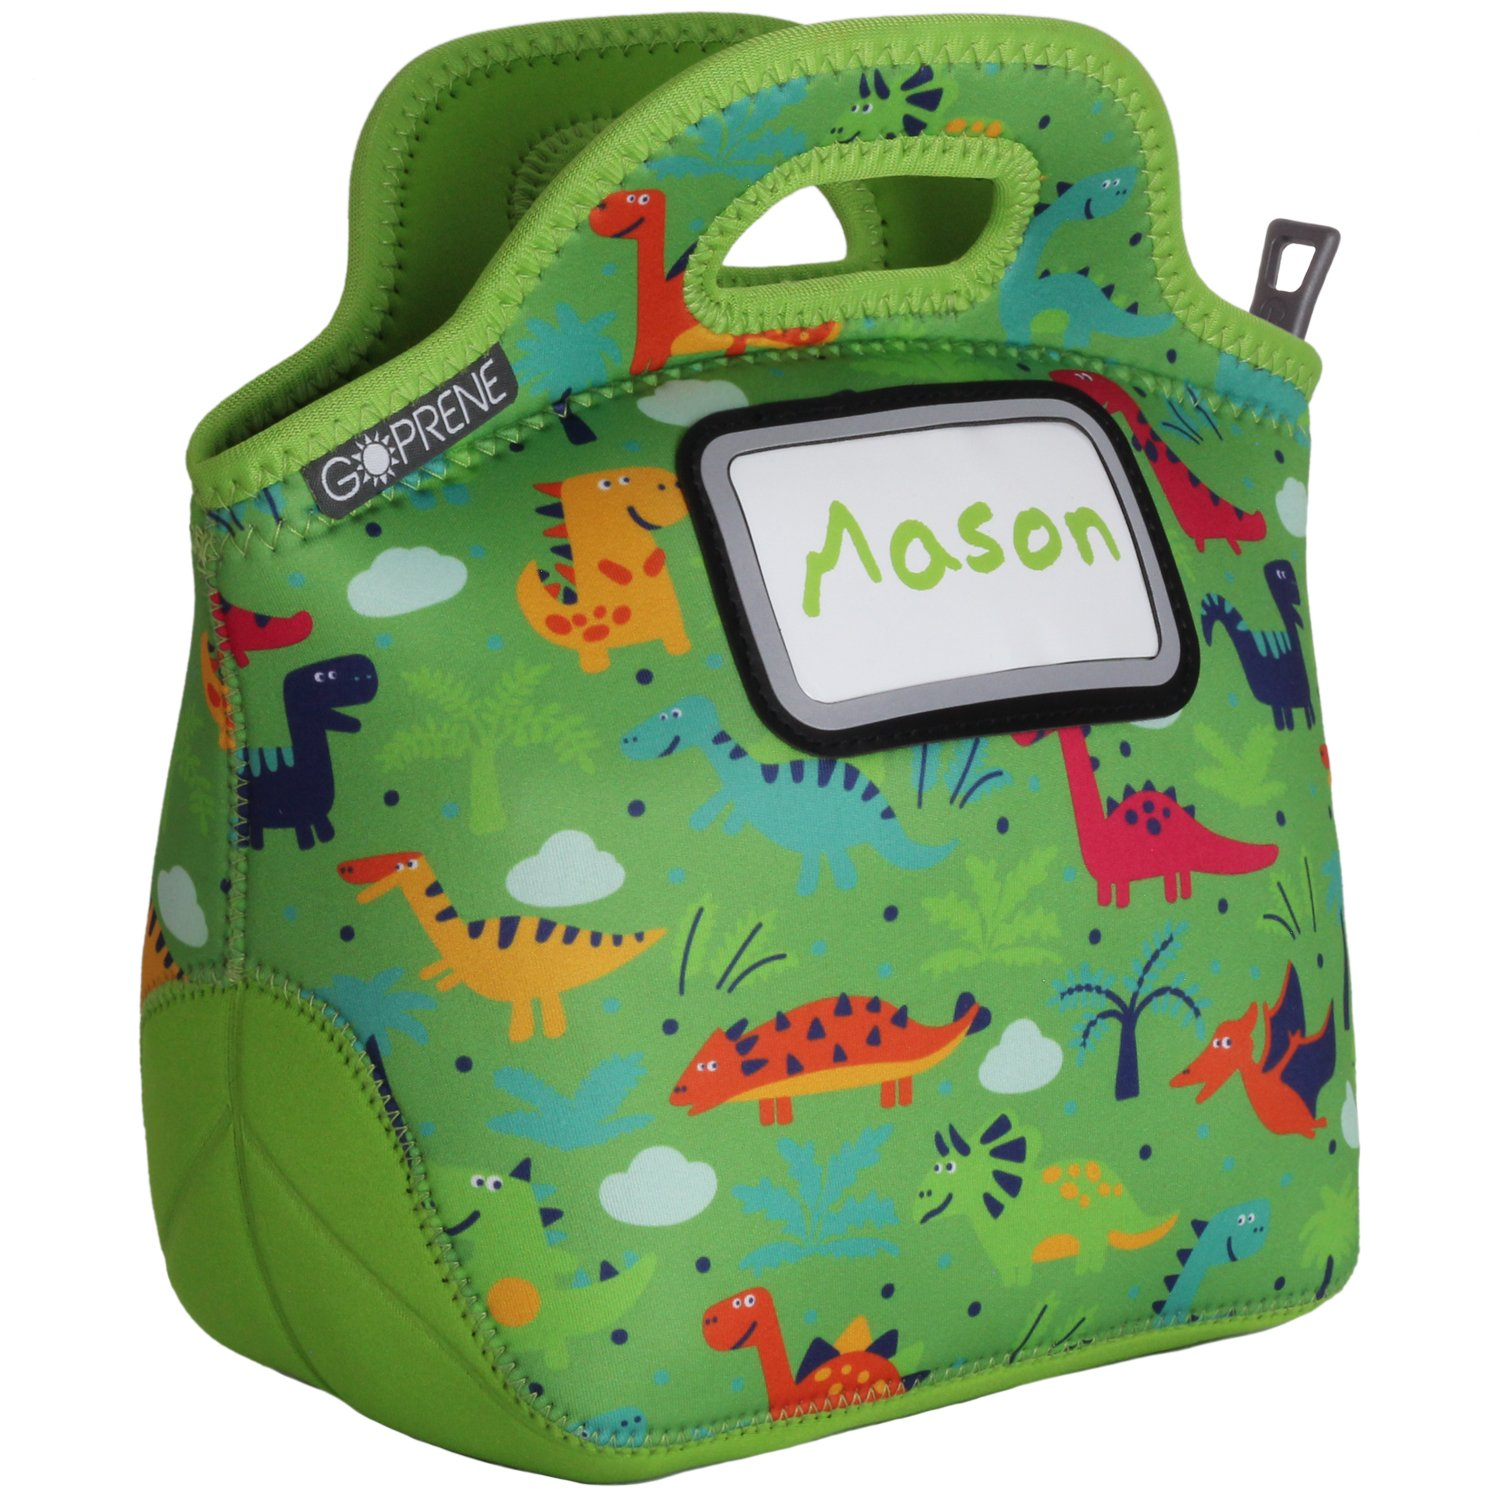 GOPRENE Kids Dinosaur Neoprene Lunch Bag with ID Card Pocket | Identi-Tote by Insulated, Reusable, Foldable, Washable, Color GREEN DINO, 3 Blank Name Cards GPST-2DN